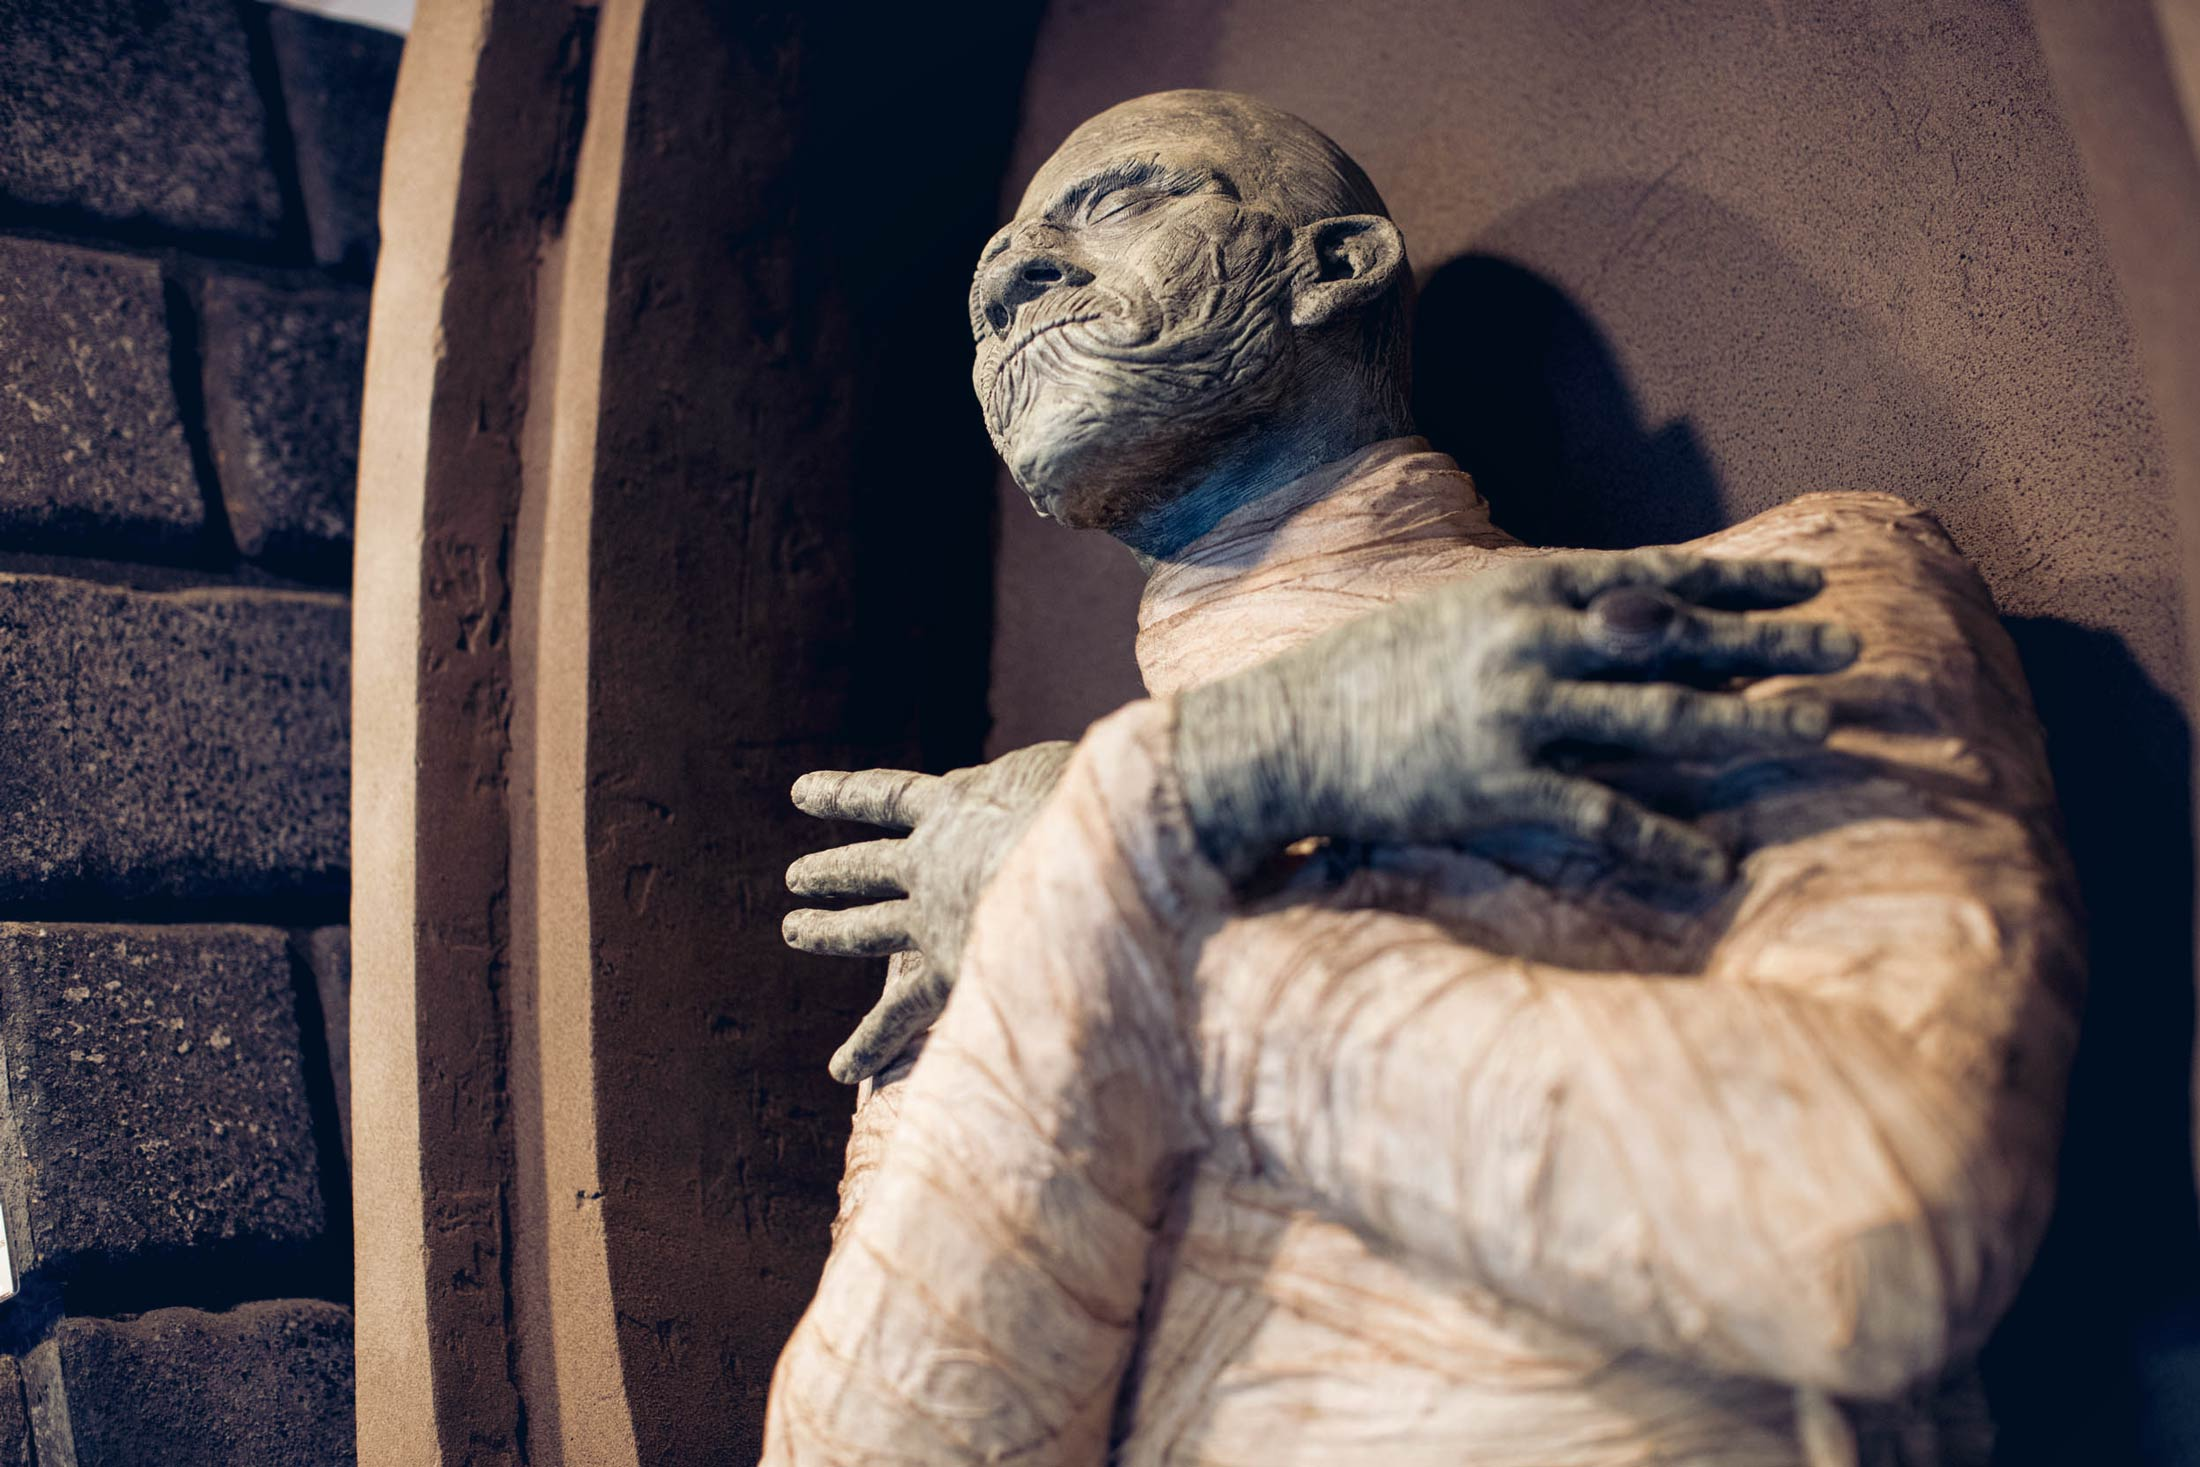 A life-sized model of a mummy in a coffin